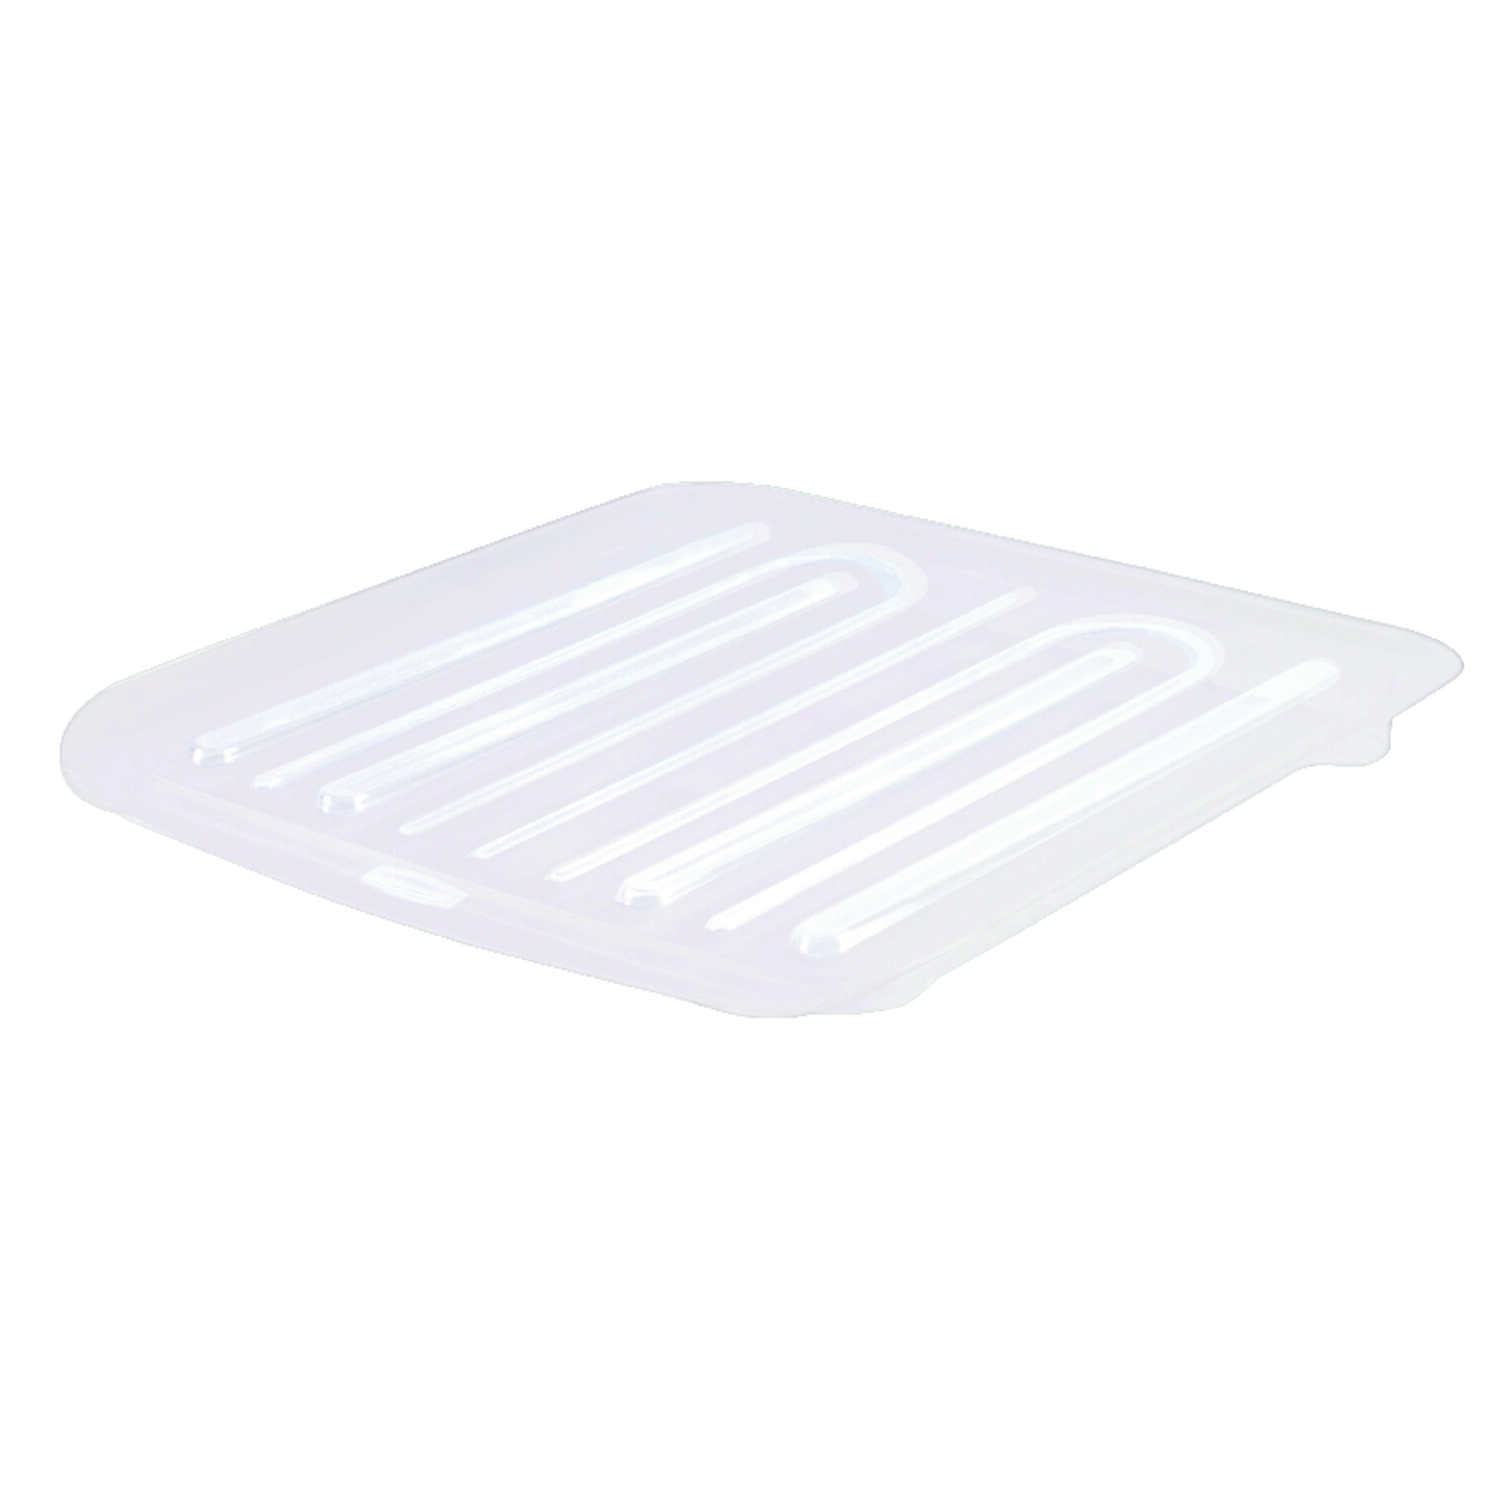 Rubbermaid  1.3 in. H x 15.3 in. W x 14.3 in. L Plastic  Dish Drainer  Clear